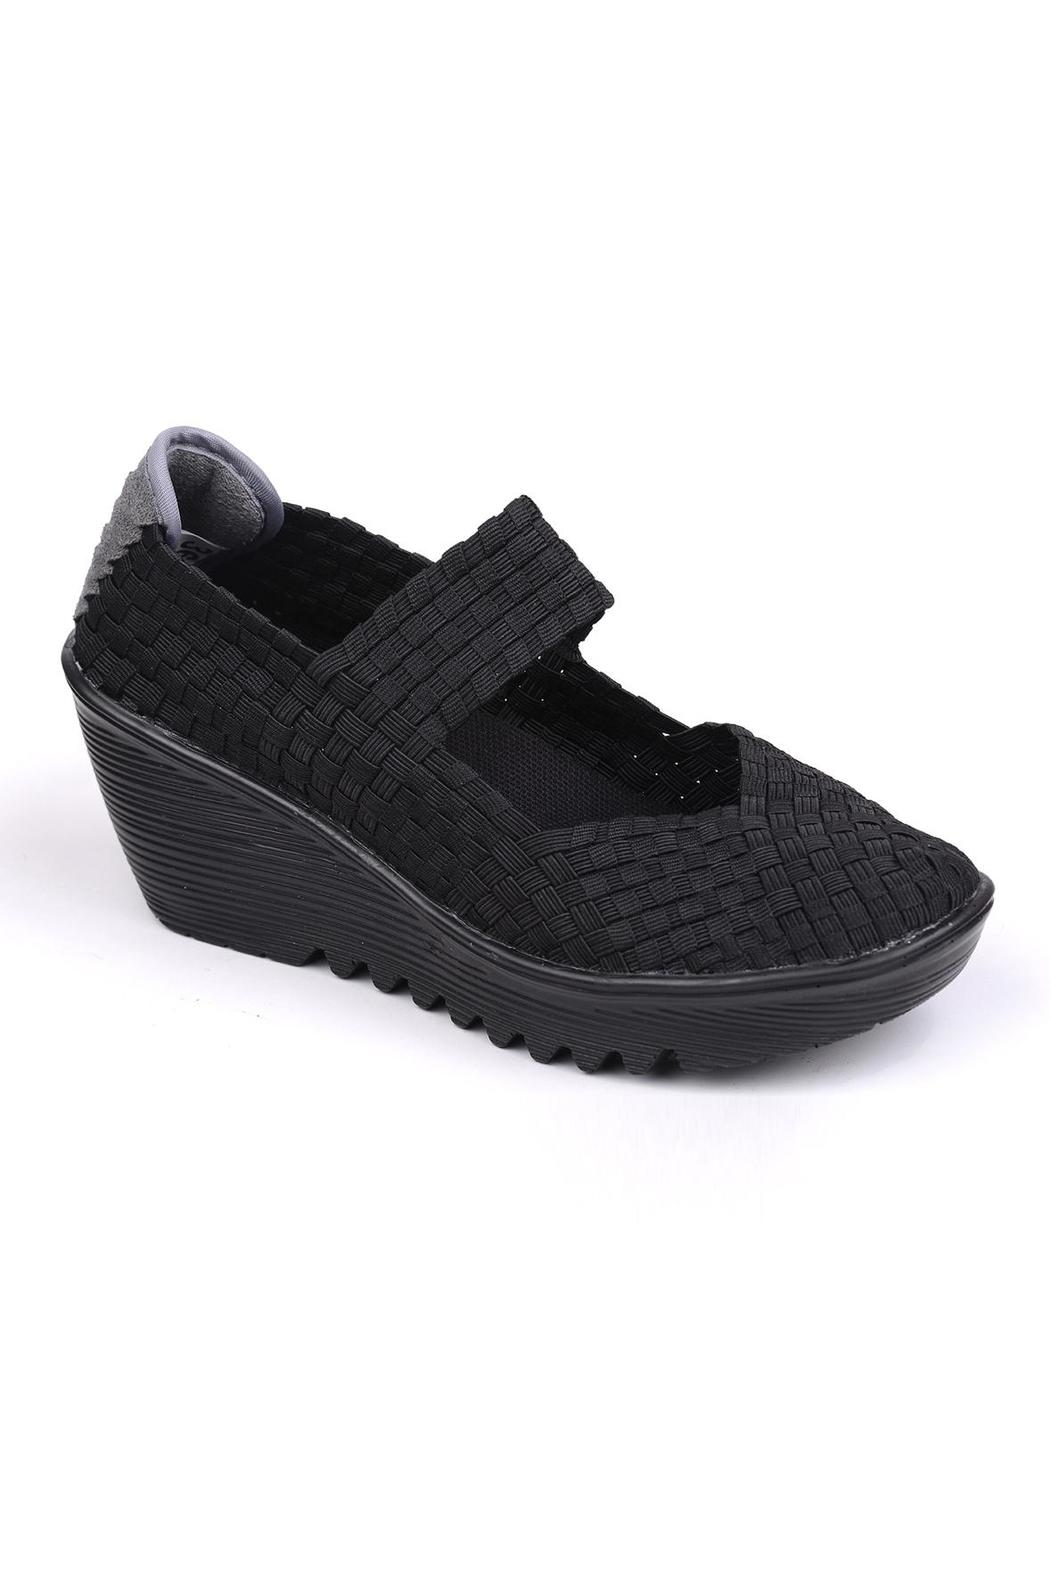 Miss Smart Shoes Price